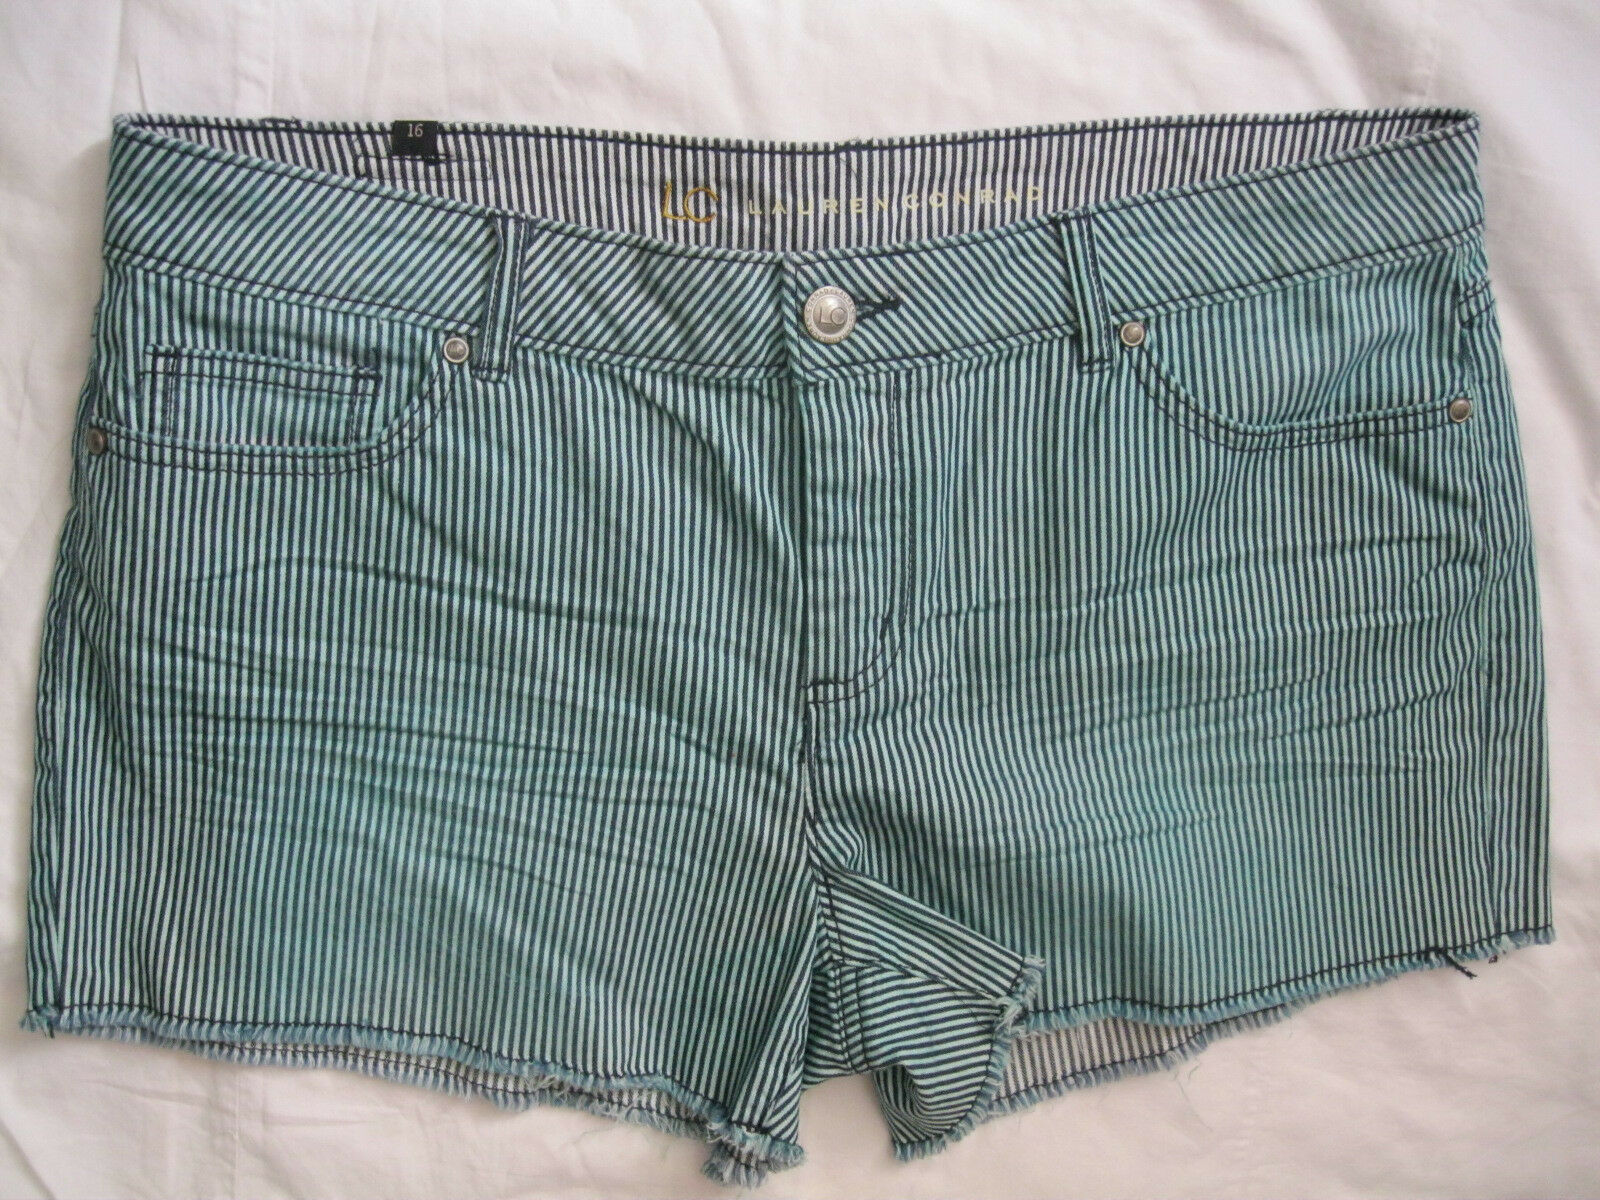 LC LAUREN CONRAD WOMENS SHORT Striped SIZE 16 NWT